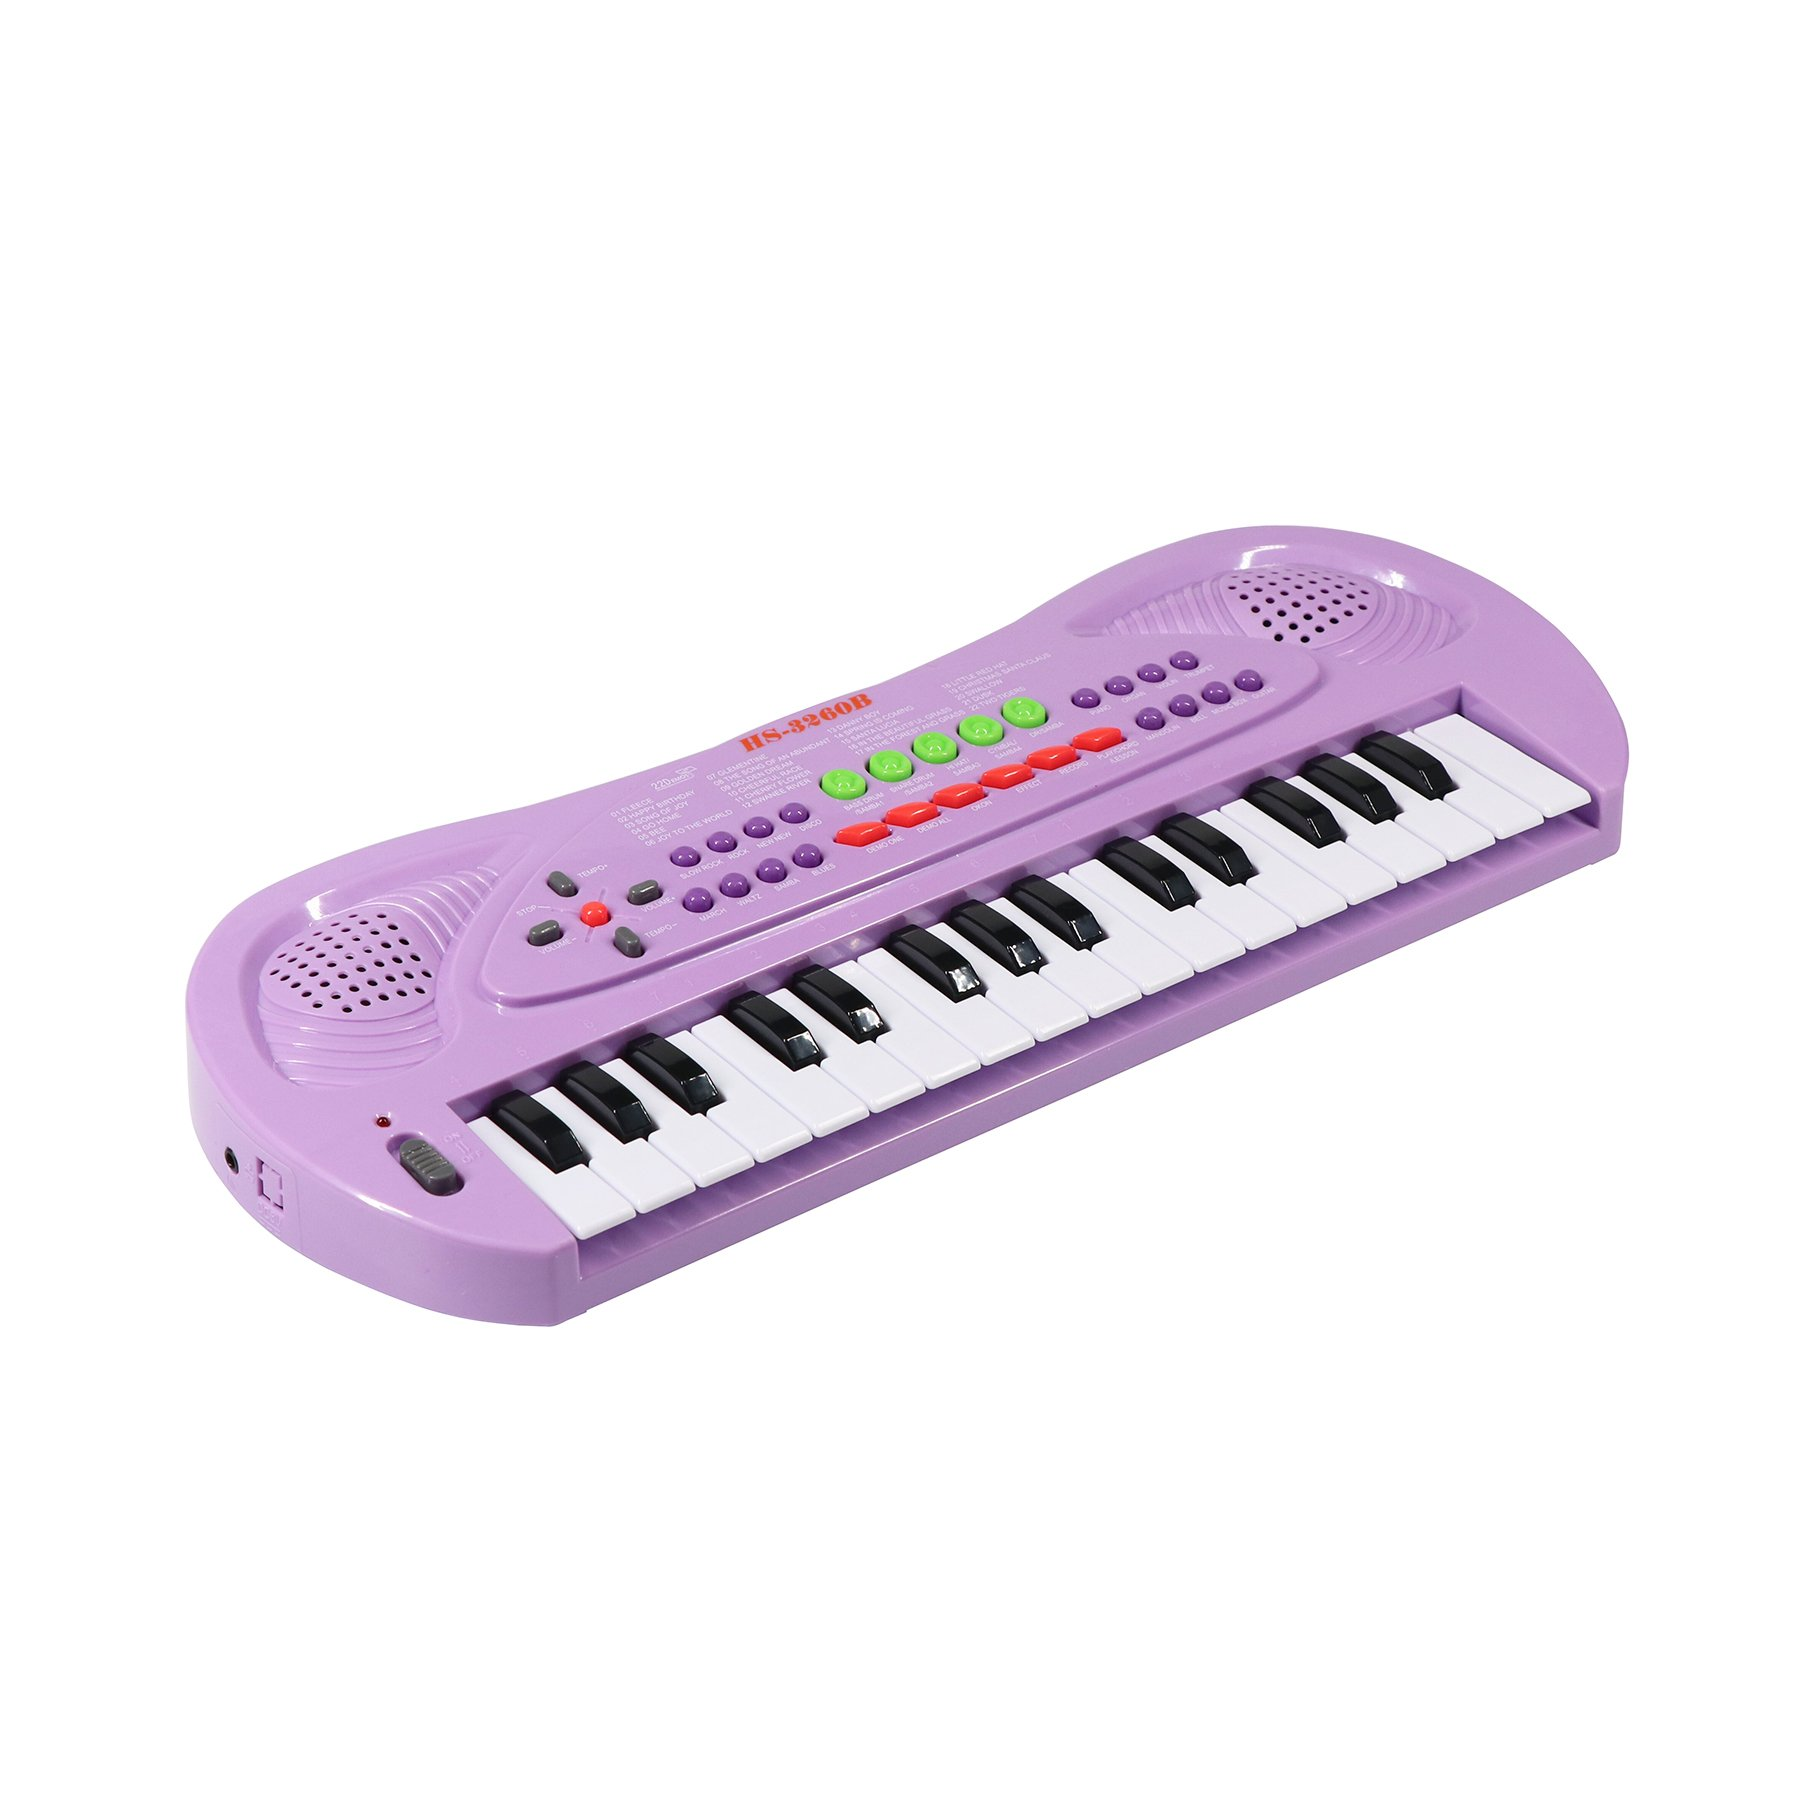 aPerfectLife Kids Piano, 32 Keys Multifunction Electronic Kids Keyboard Piano Music Instrument for Toddler with Microphone (Purple) (Purple)